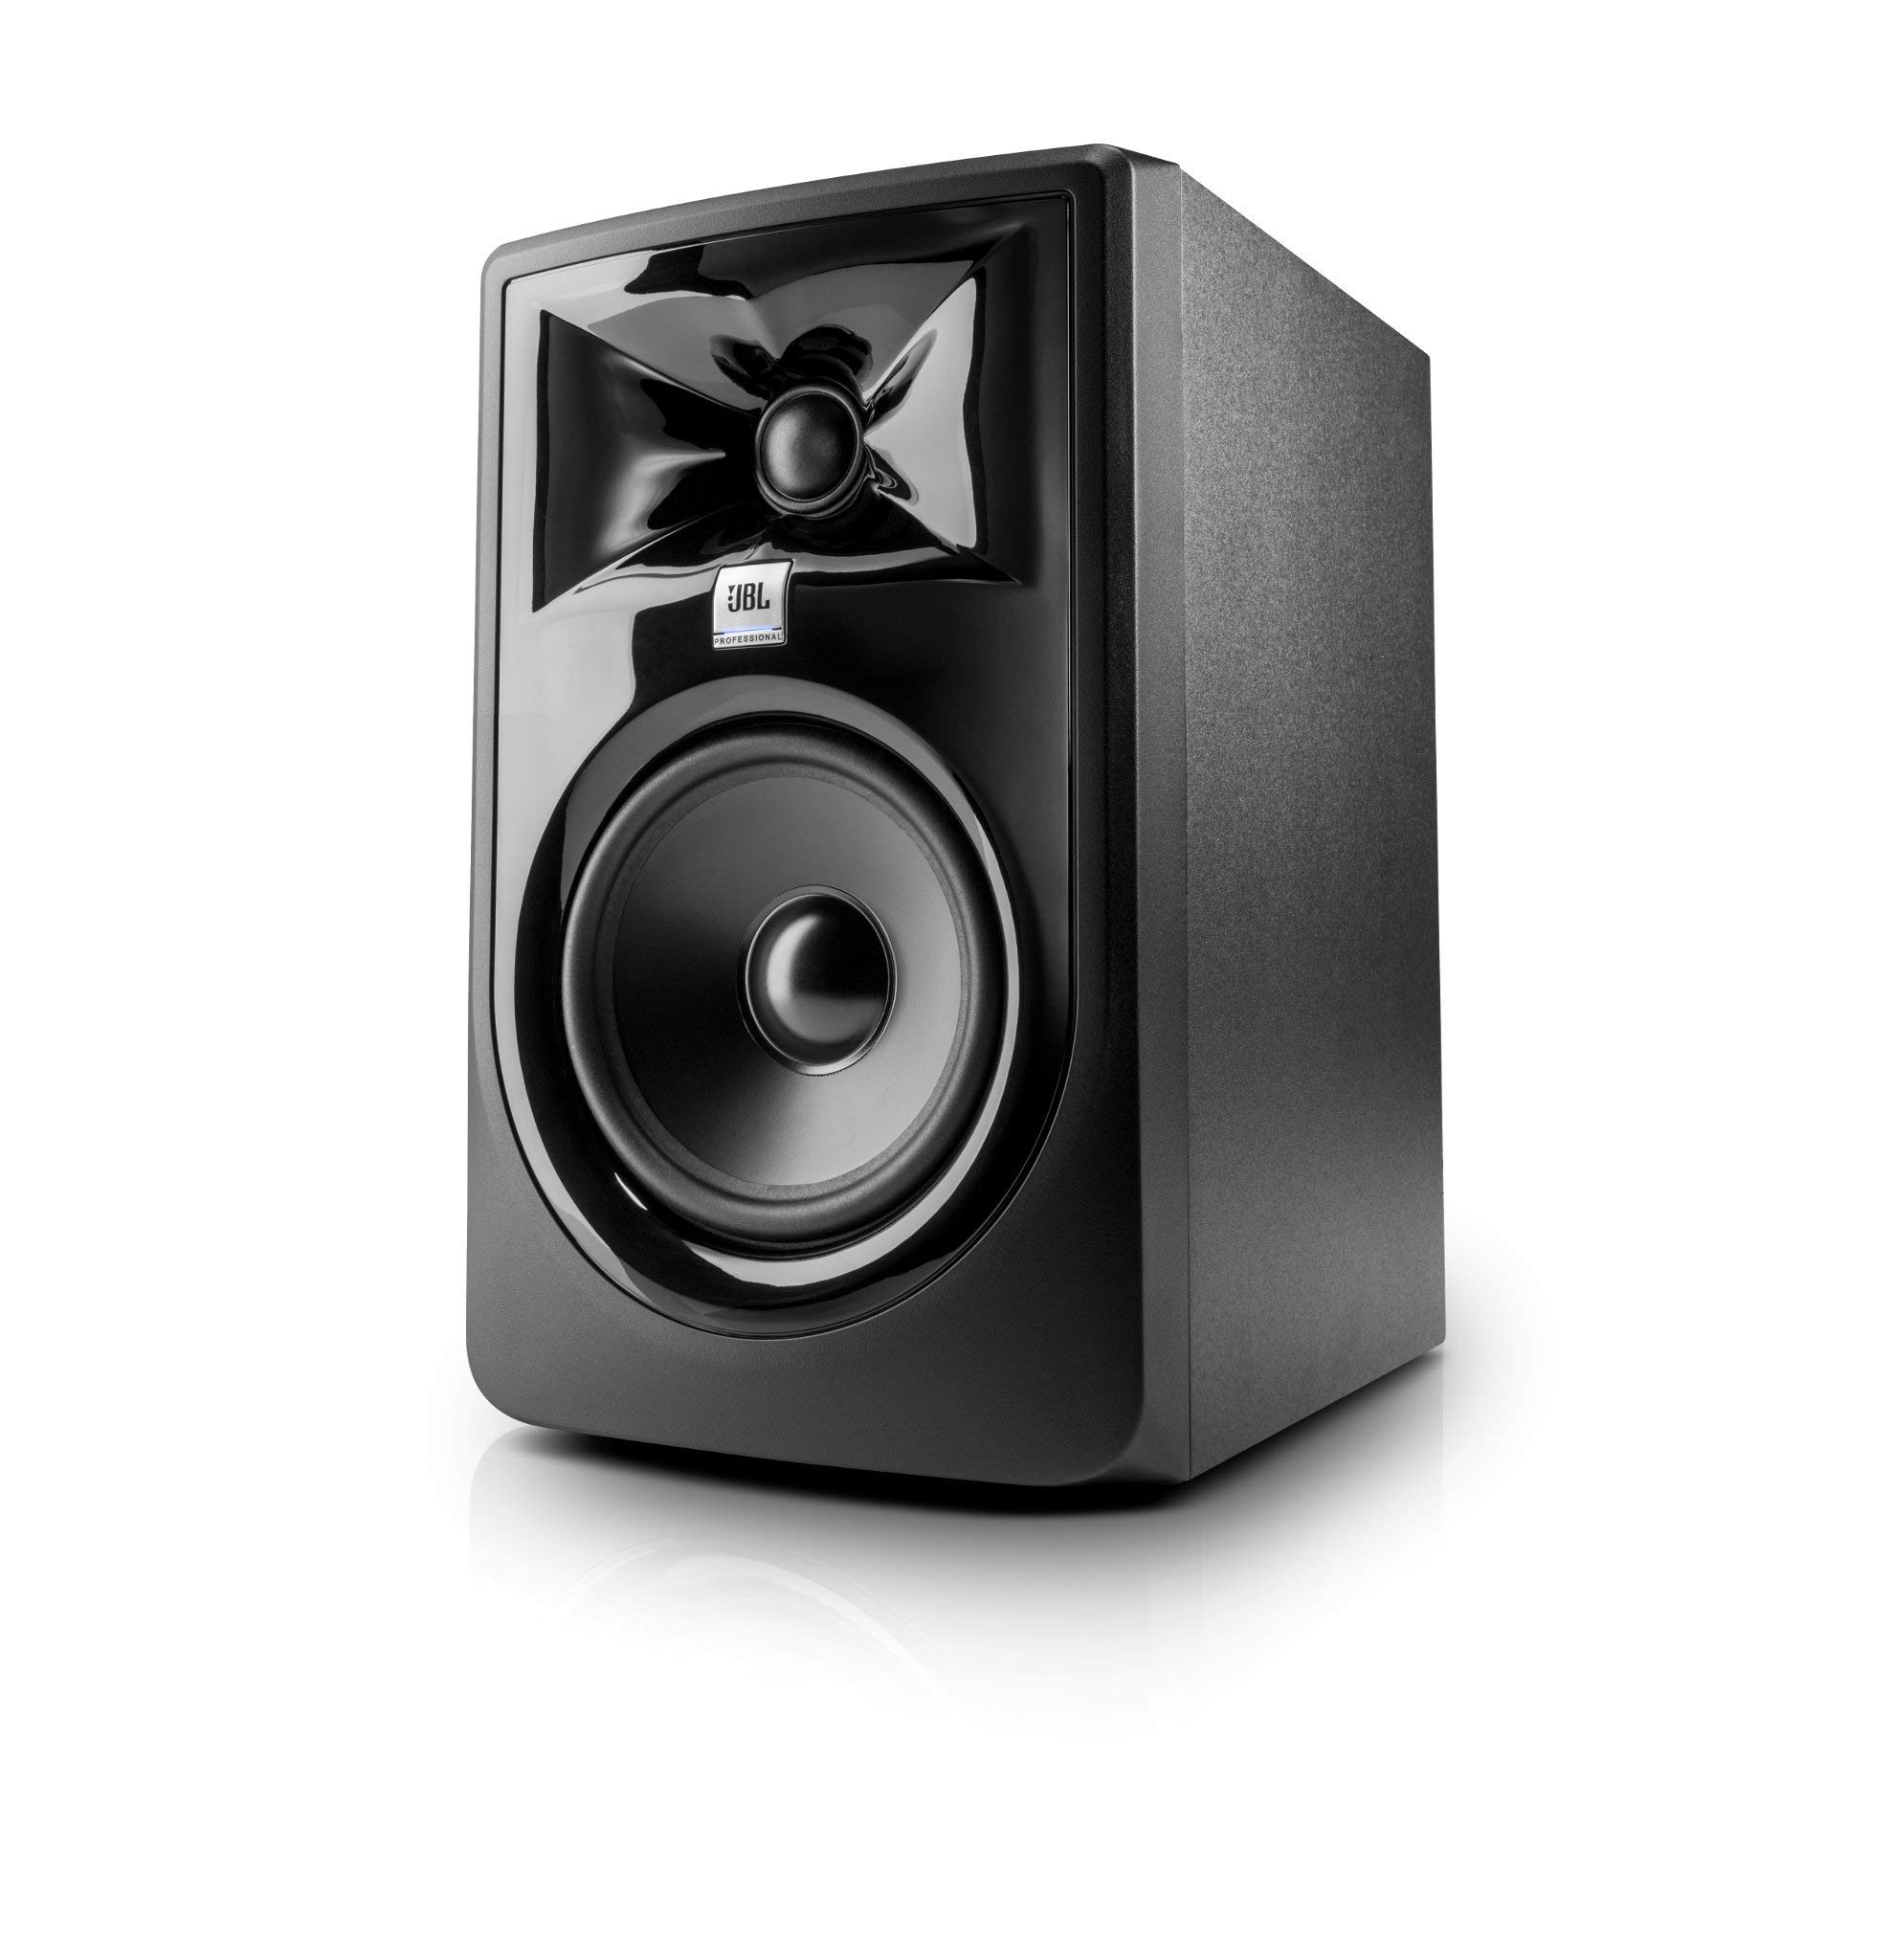 JBL Professional 305P MkII 5'' 2-Way Powered Studio Monitor (new model) - 305PMKII (Renewed)